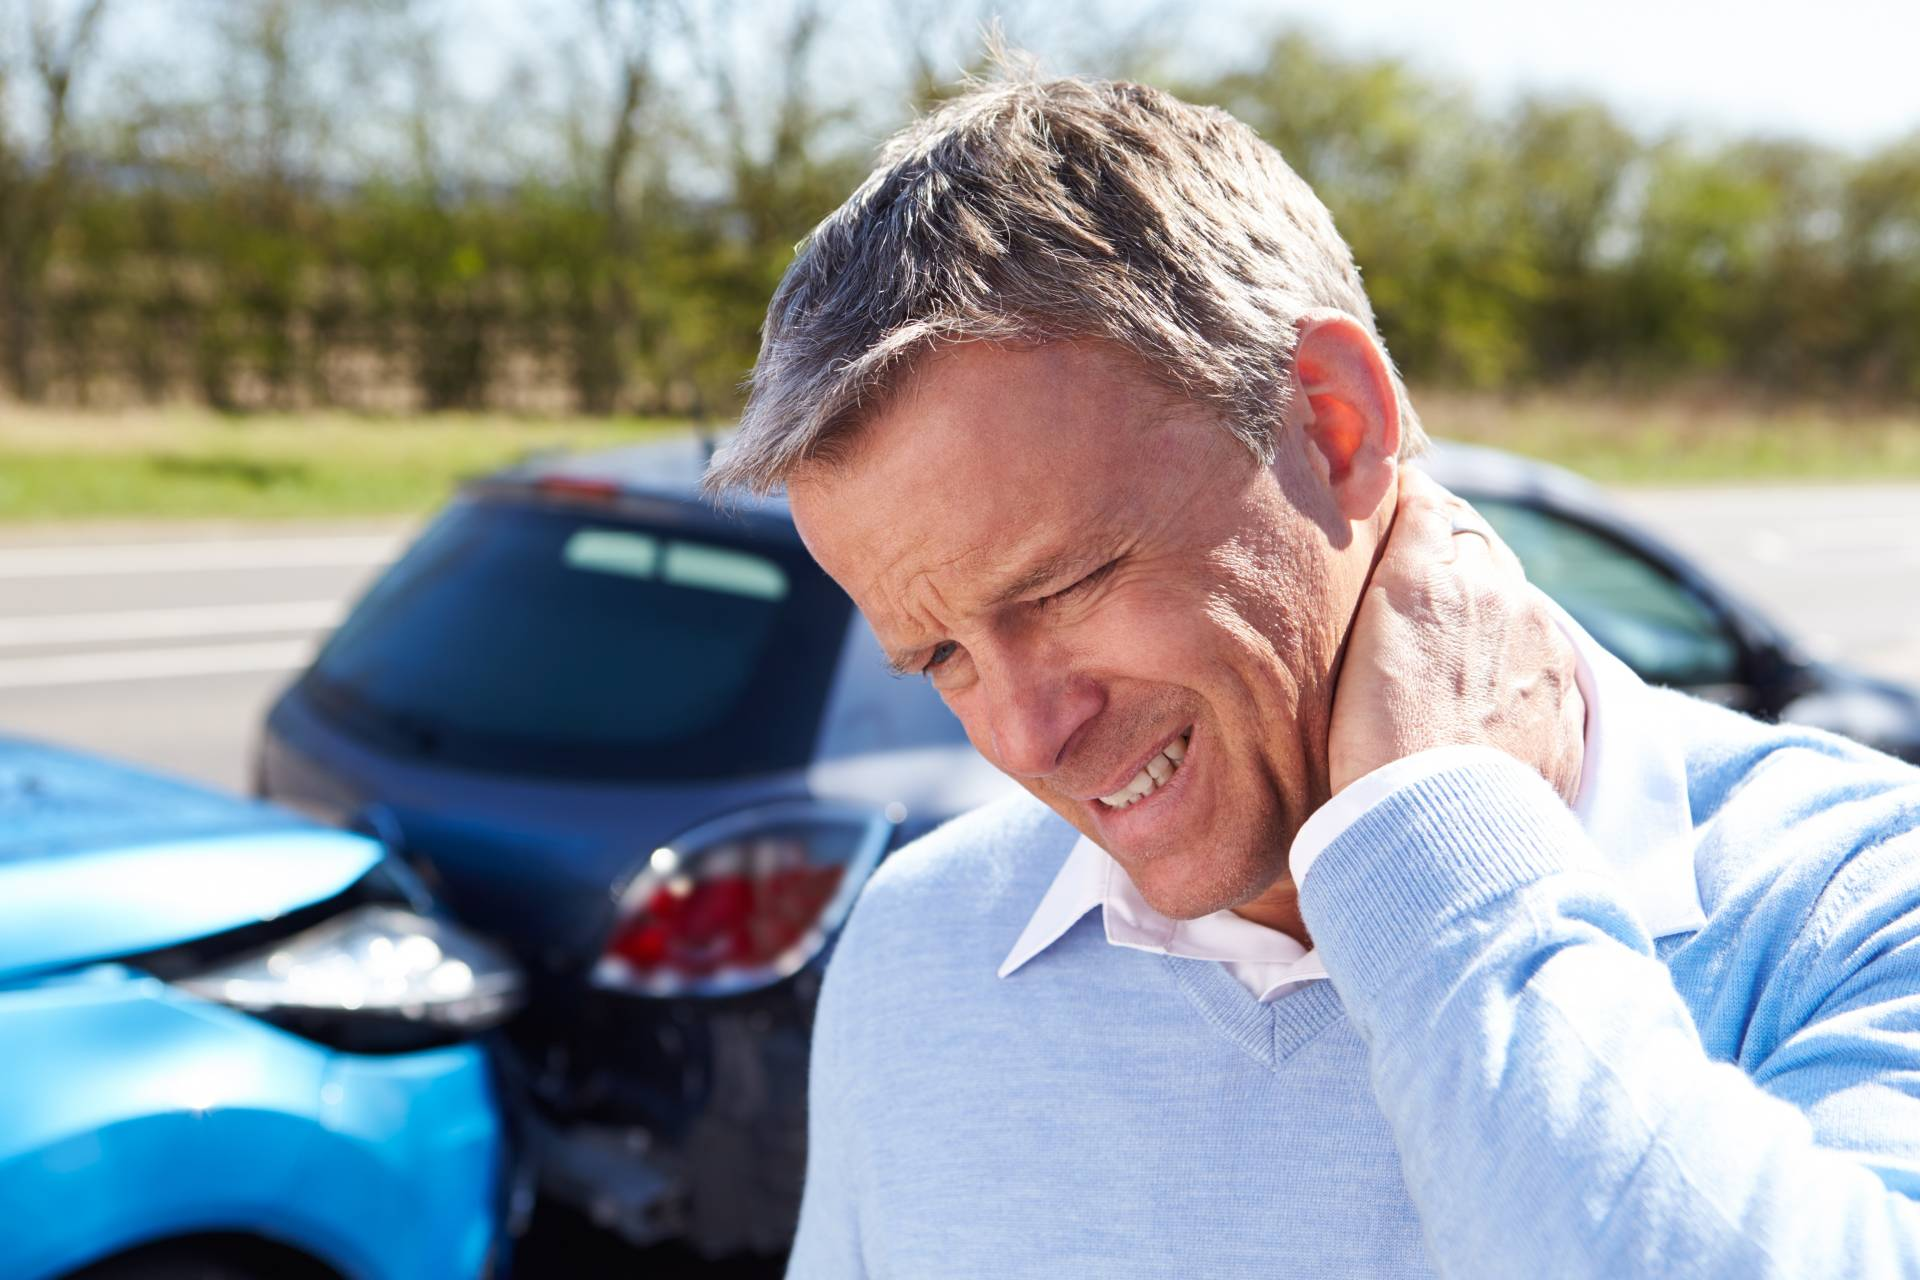 Injured in an auto accident in Smyrna, Ga? Call our personal injury lawyers for a free consultation.